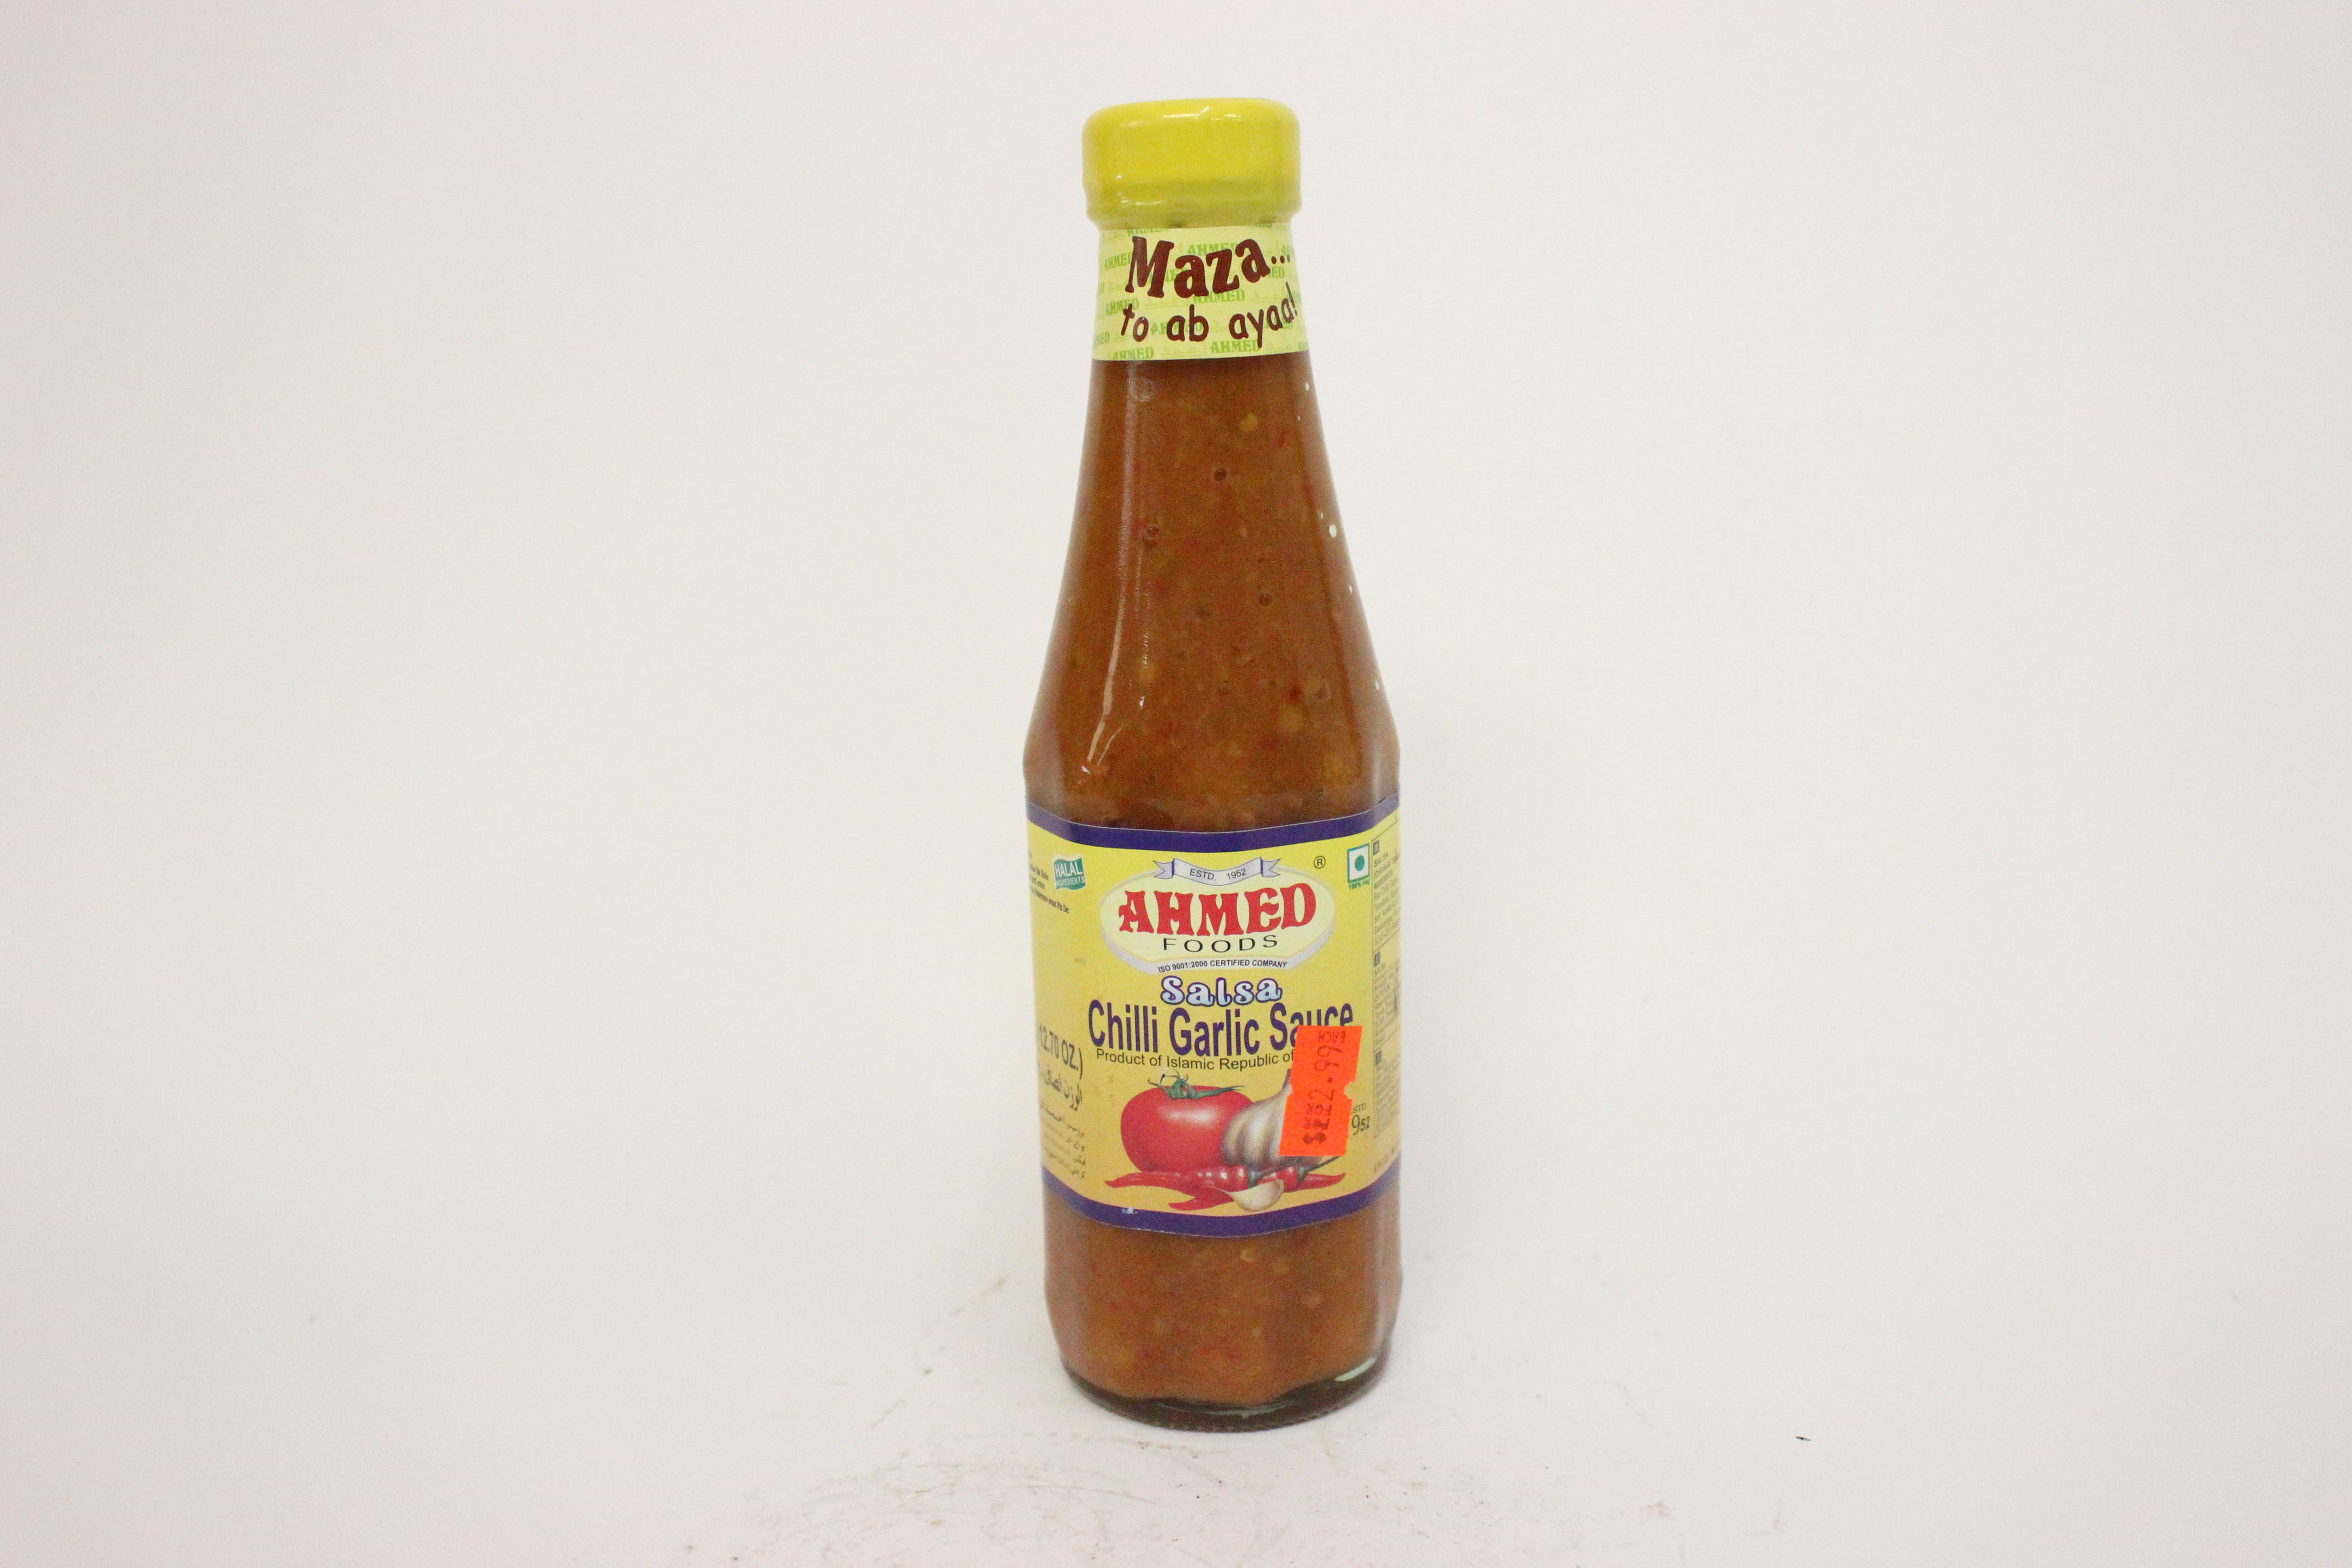 Ahmed Chilli Garlic Sauce 12.70 oz